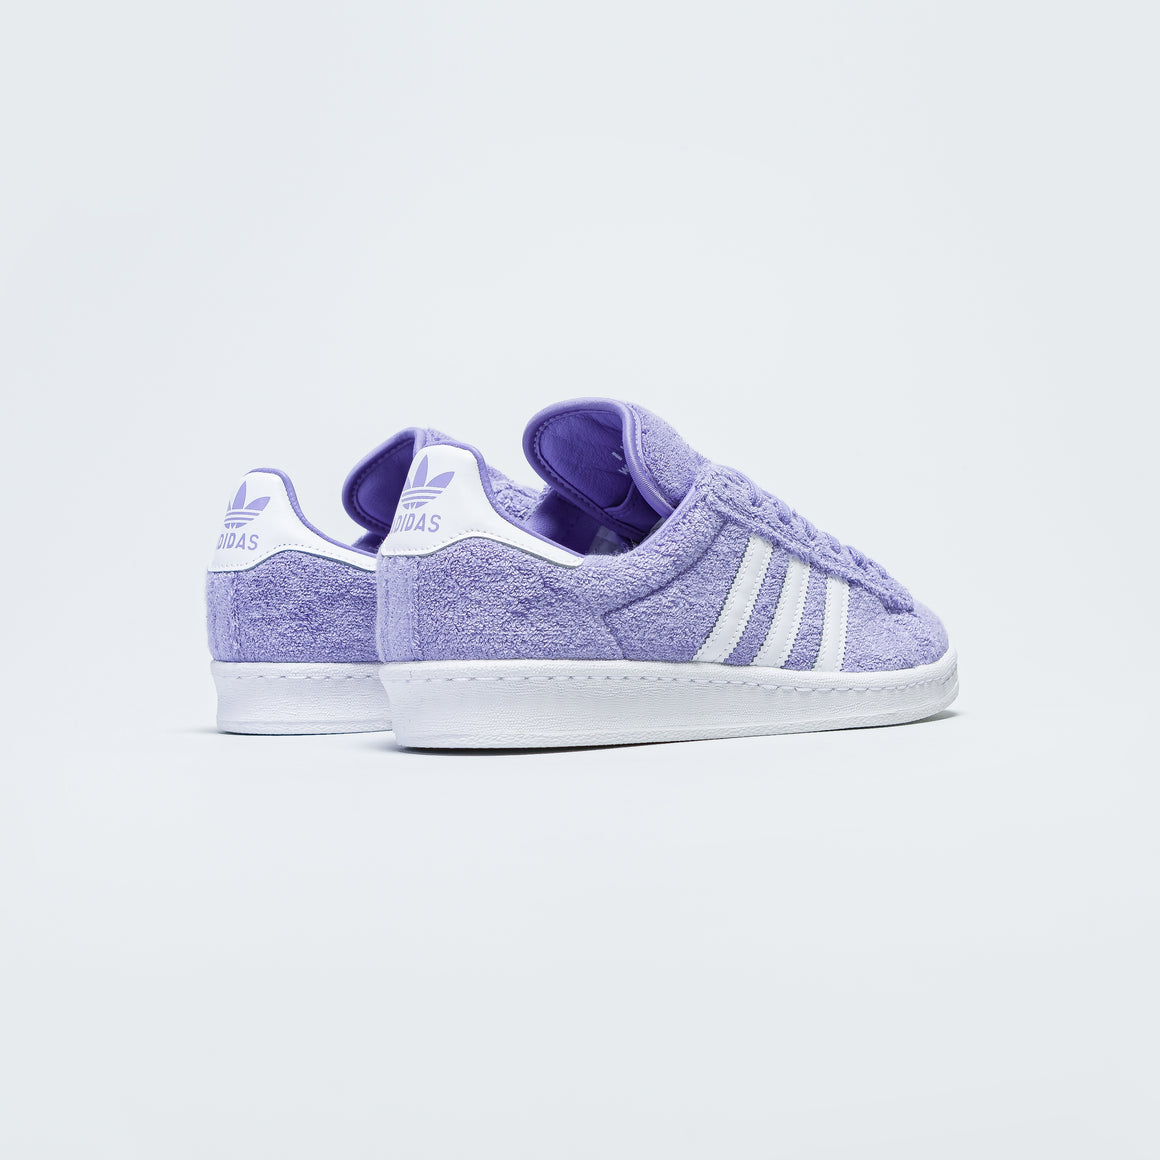 adidas - Campus 80's x Towelie - Chalk Purple/Footwear White - Up There